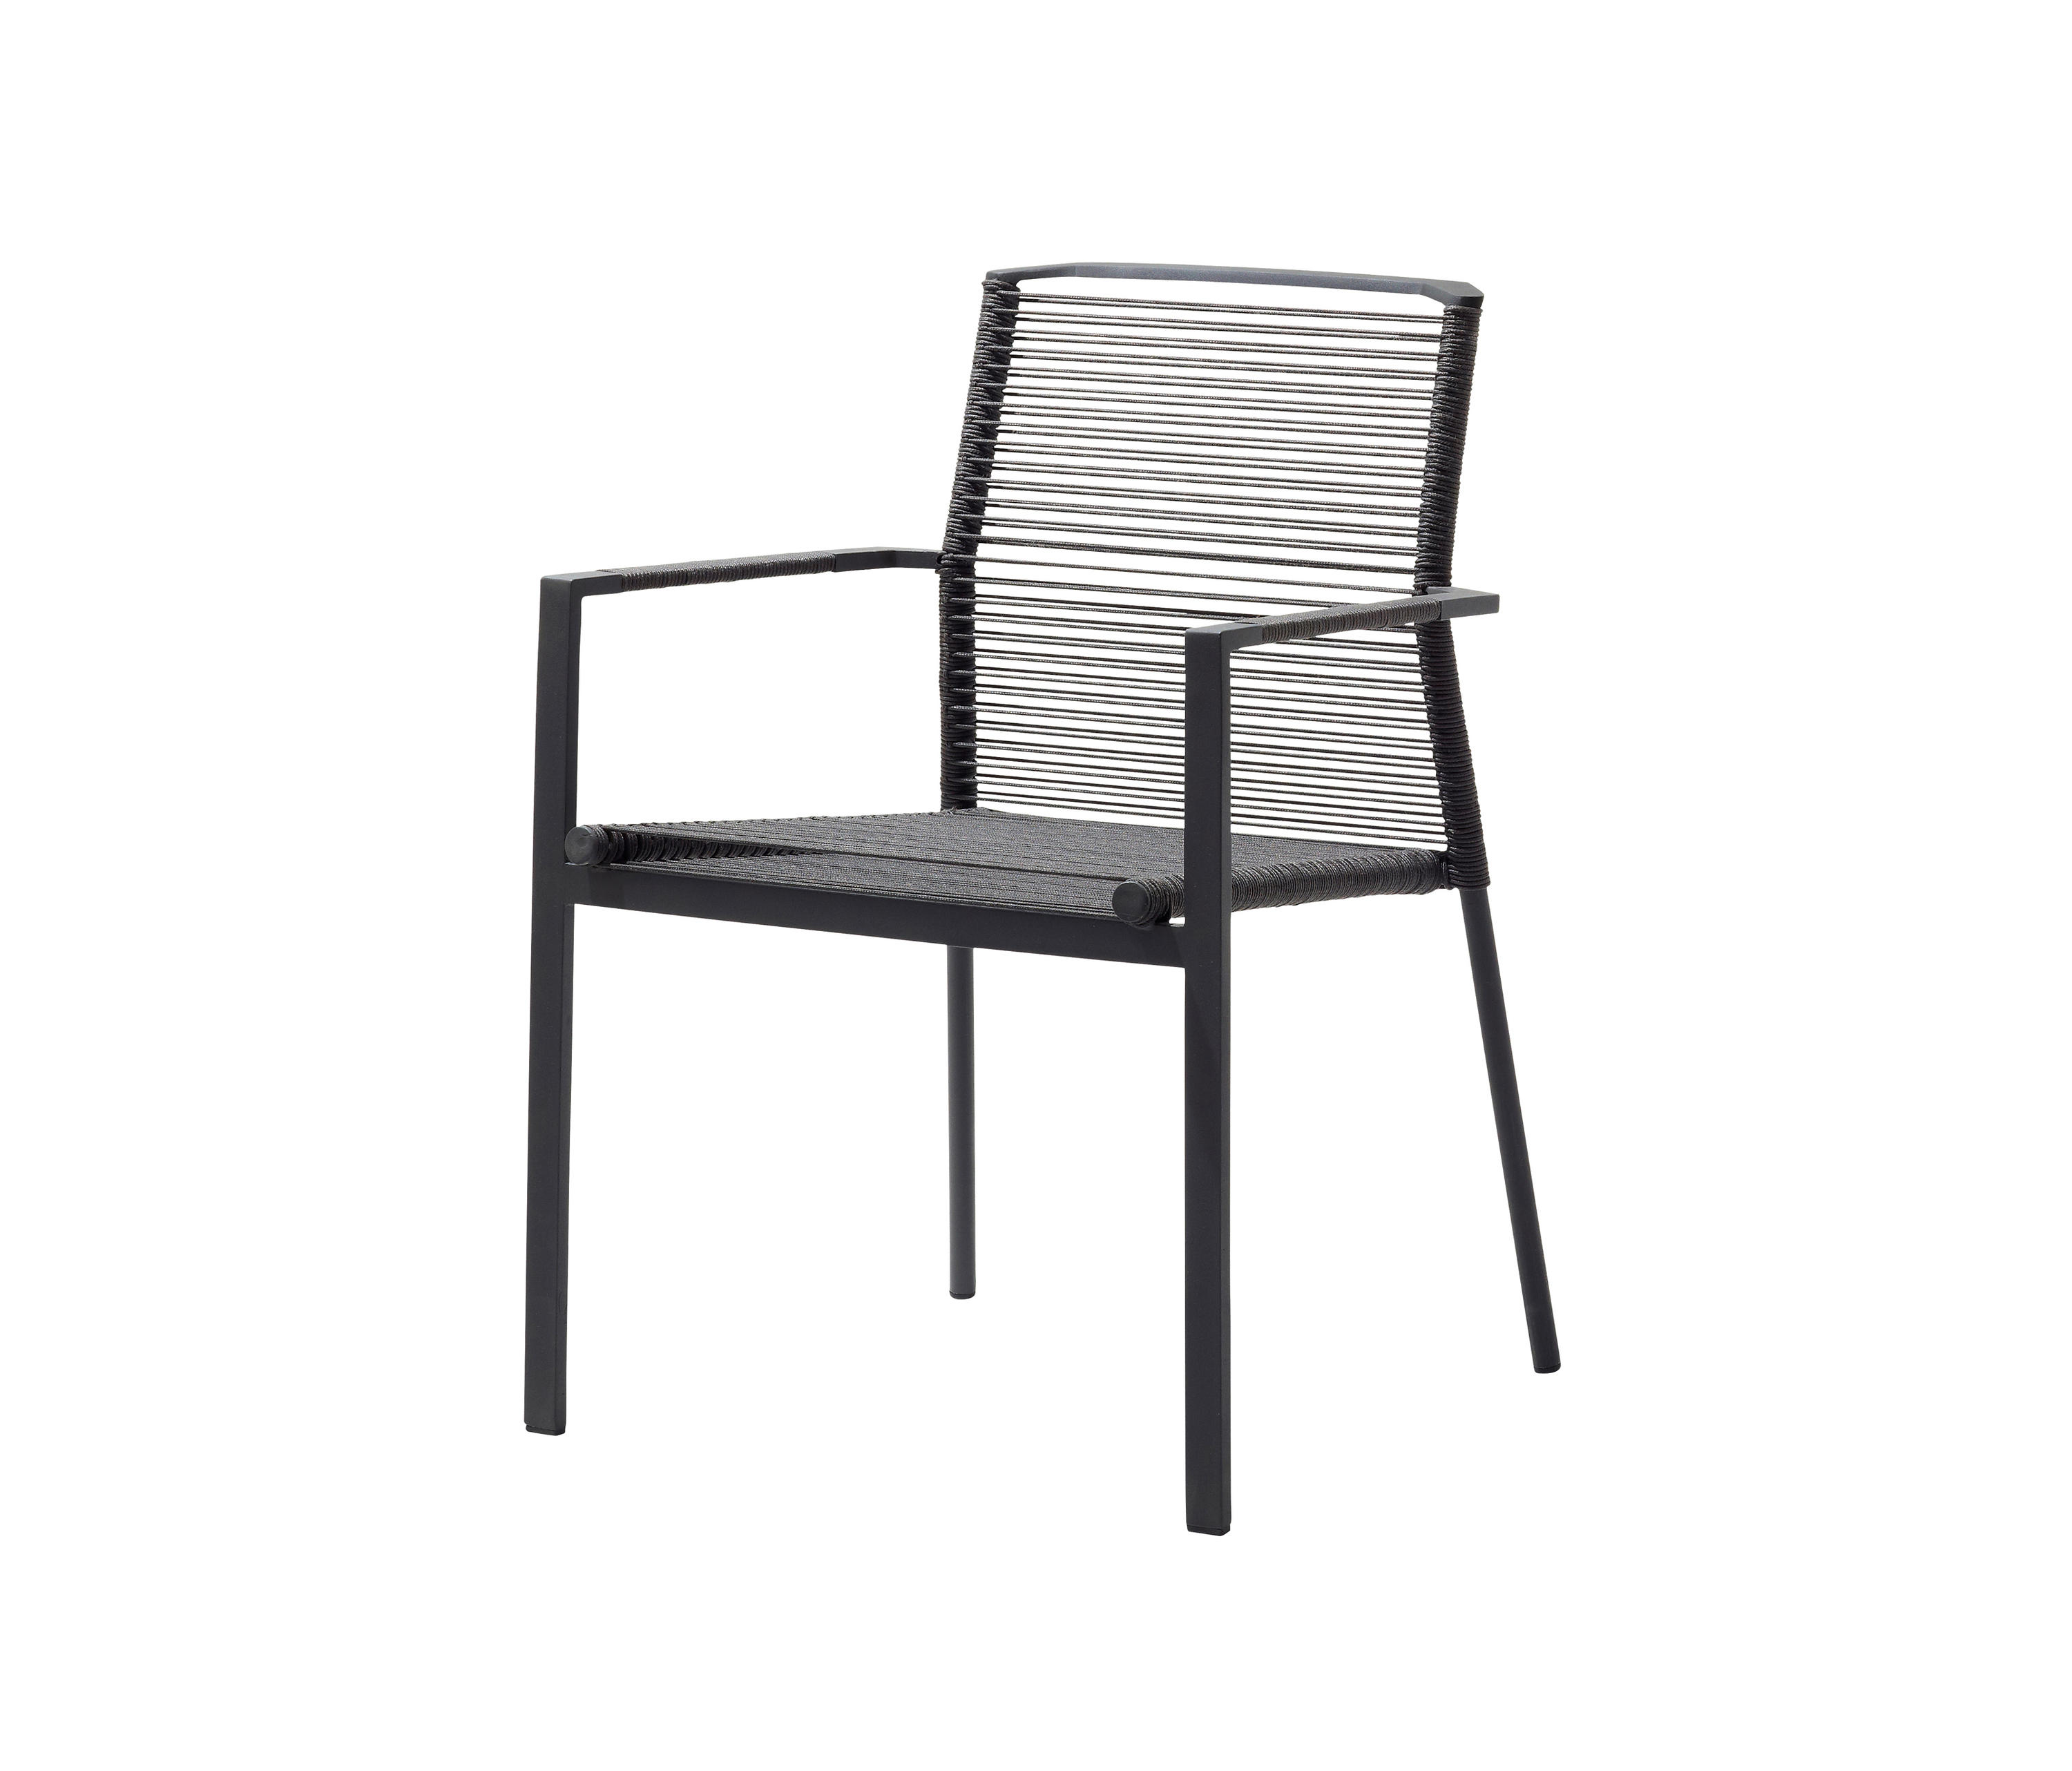 EDGE ARMCHAIR - Chairs from Cane-line | Architonic